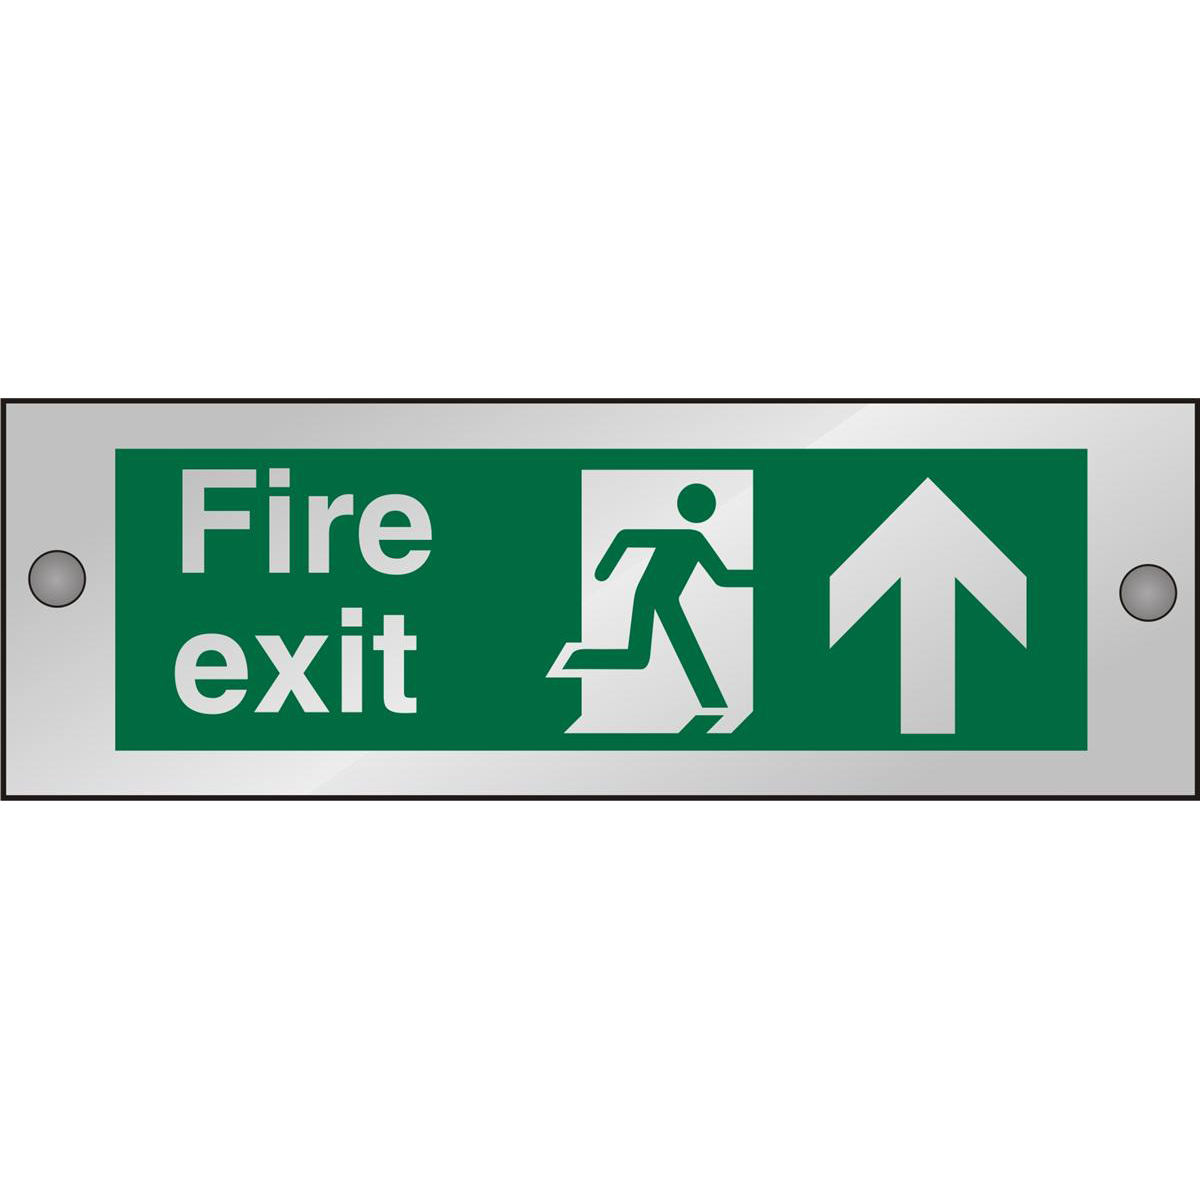 Clear Sign 300x100 5mm FireExit Man Running Right&Arrow Up Ref CACSP129300x100 *Up to 10 Day Leadtime*